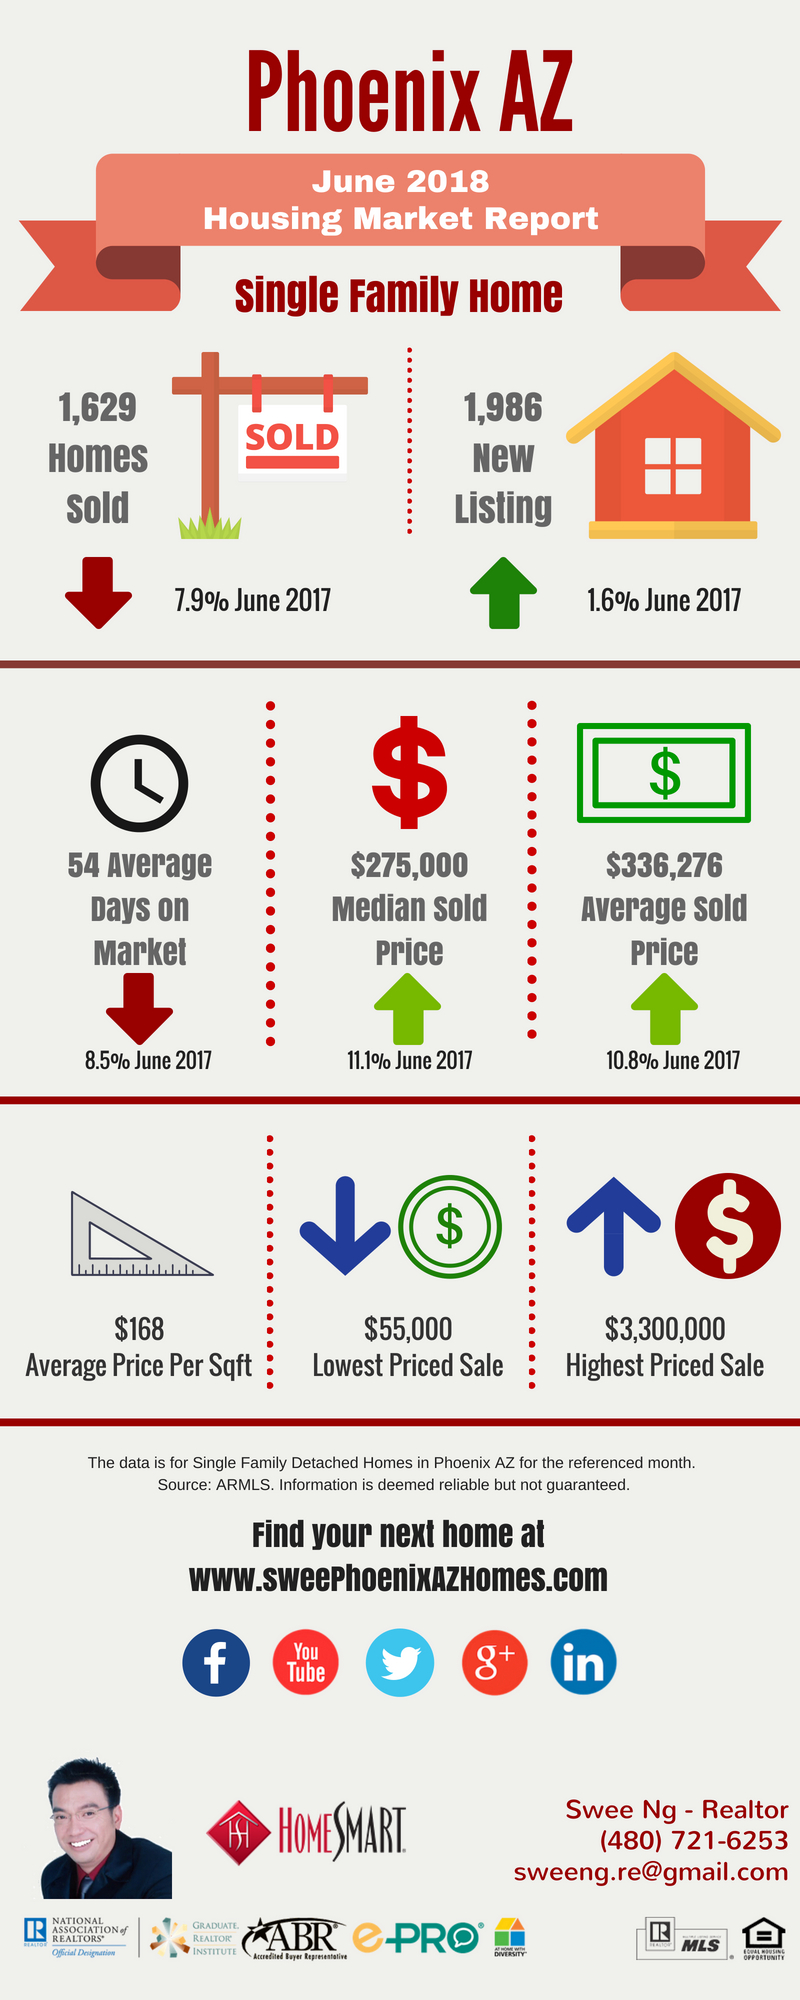 Phoenix Housing Market Update June 2018 and House Value by Swee Ng